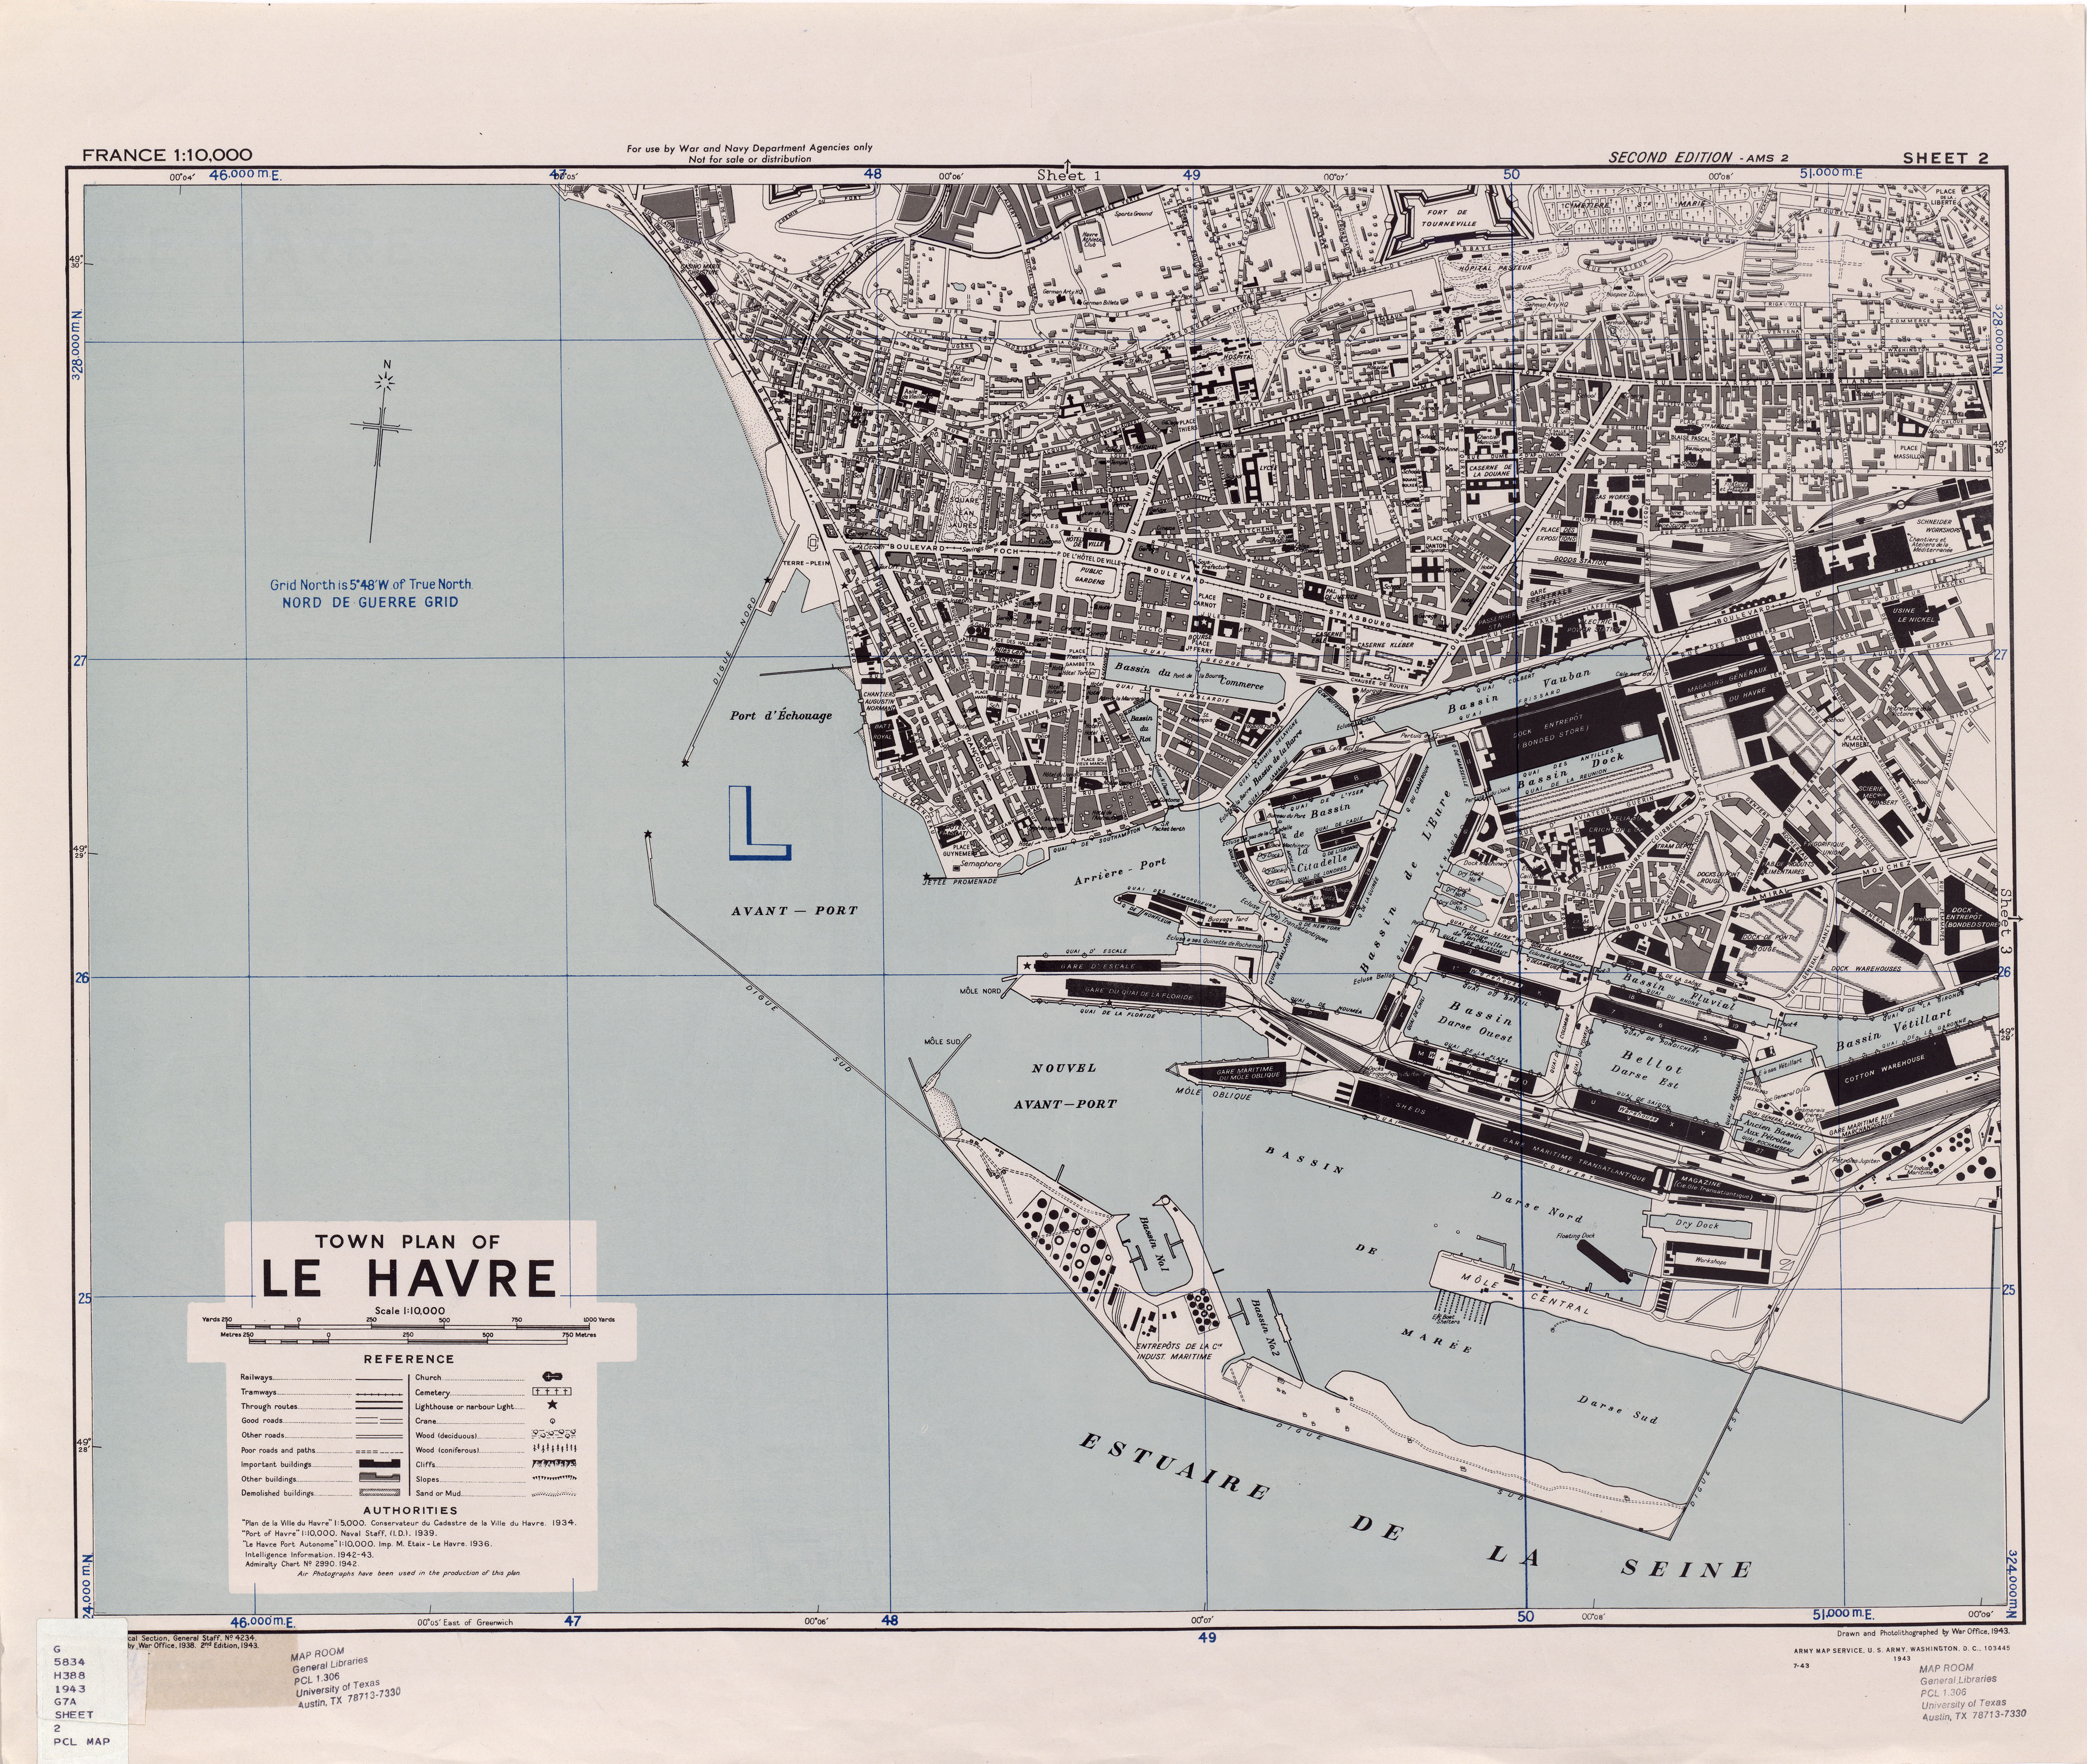 Le Havre France Pictures and videos and news CitiesTipscom